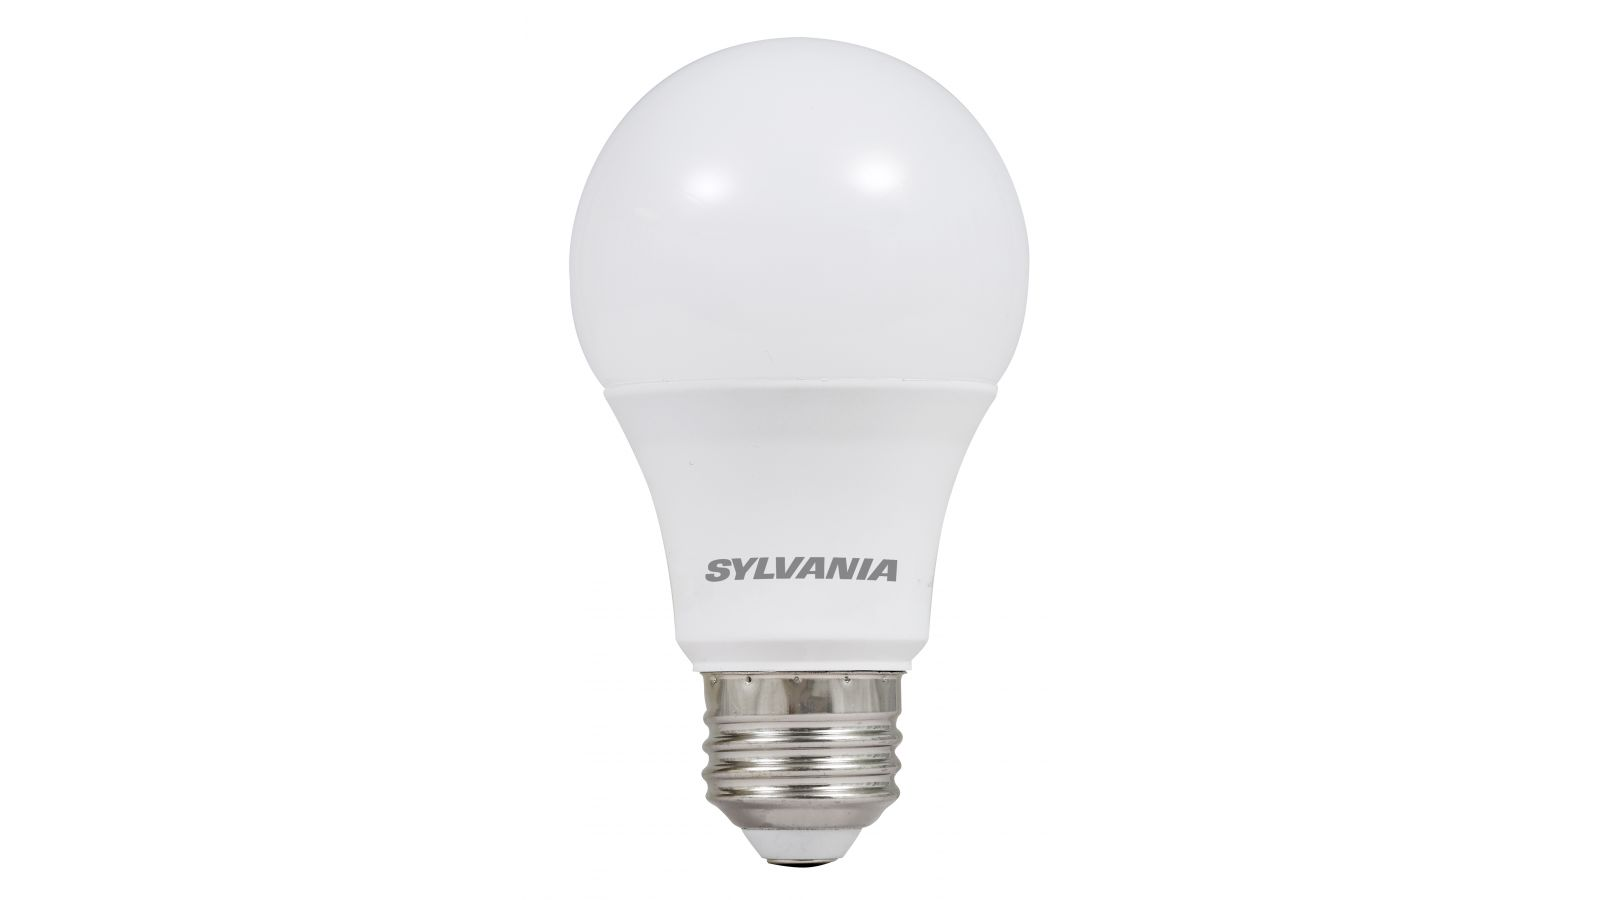 SYLVANIA ULTRA LED Motion Sensor A19 Lamp